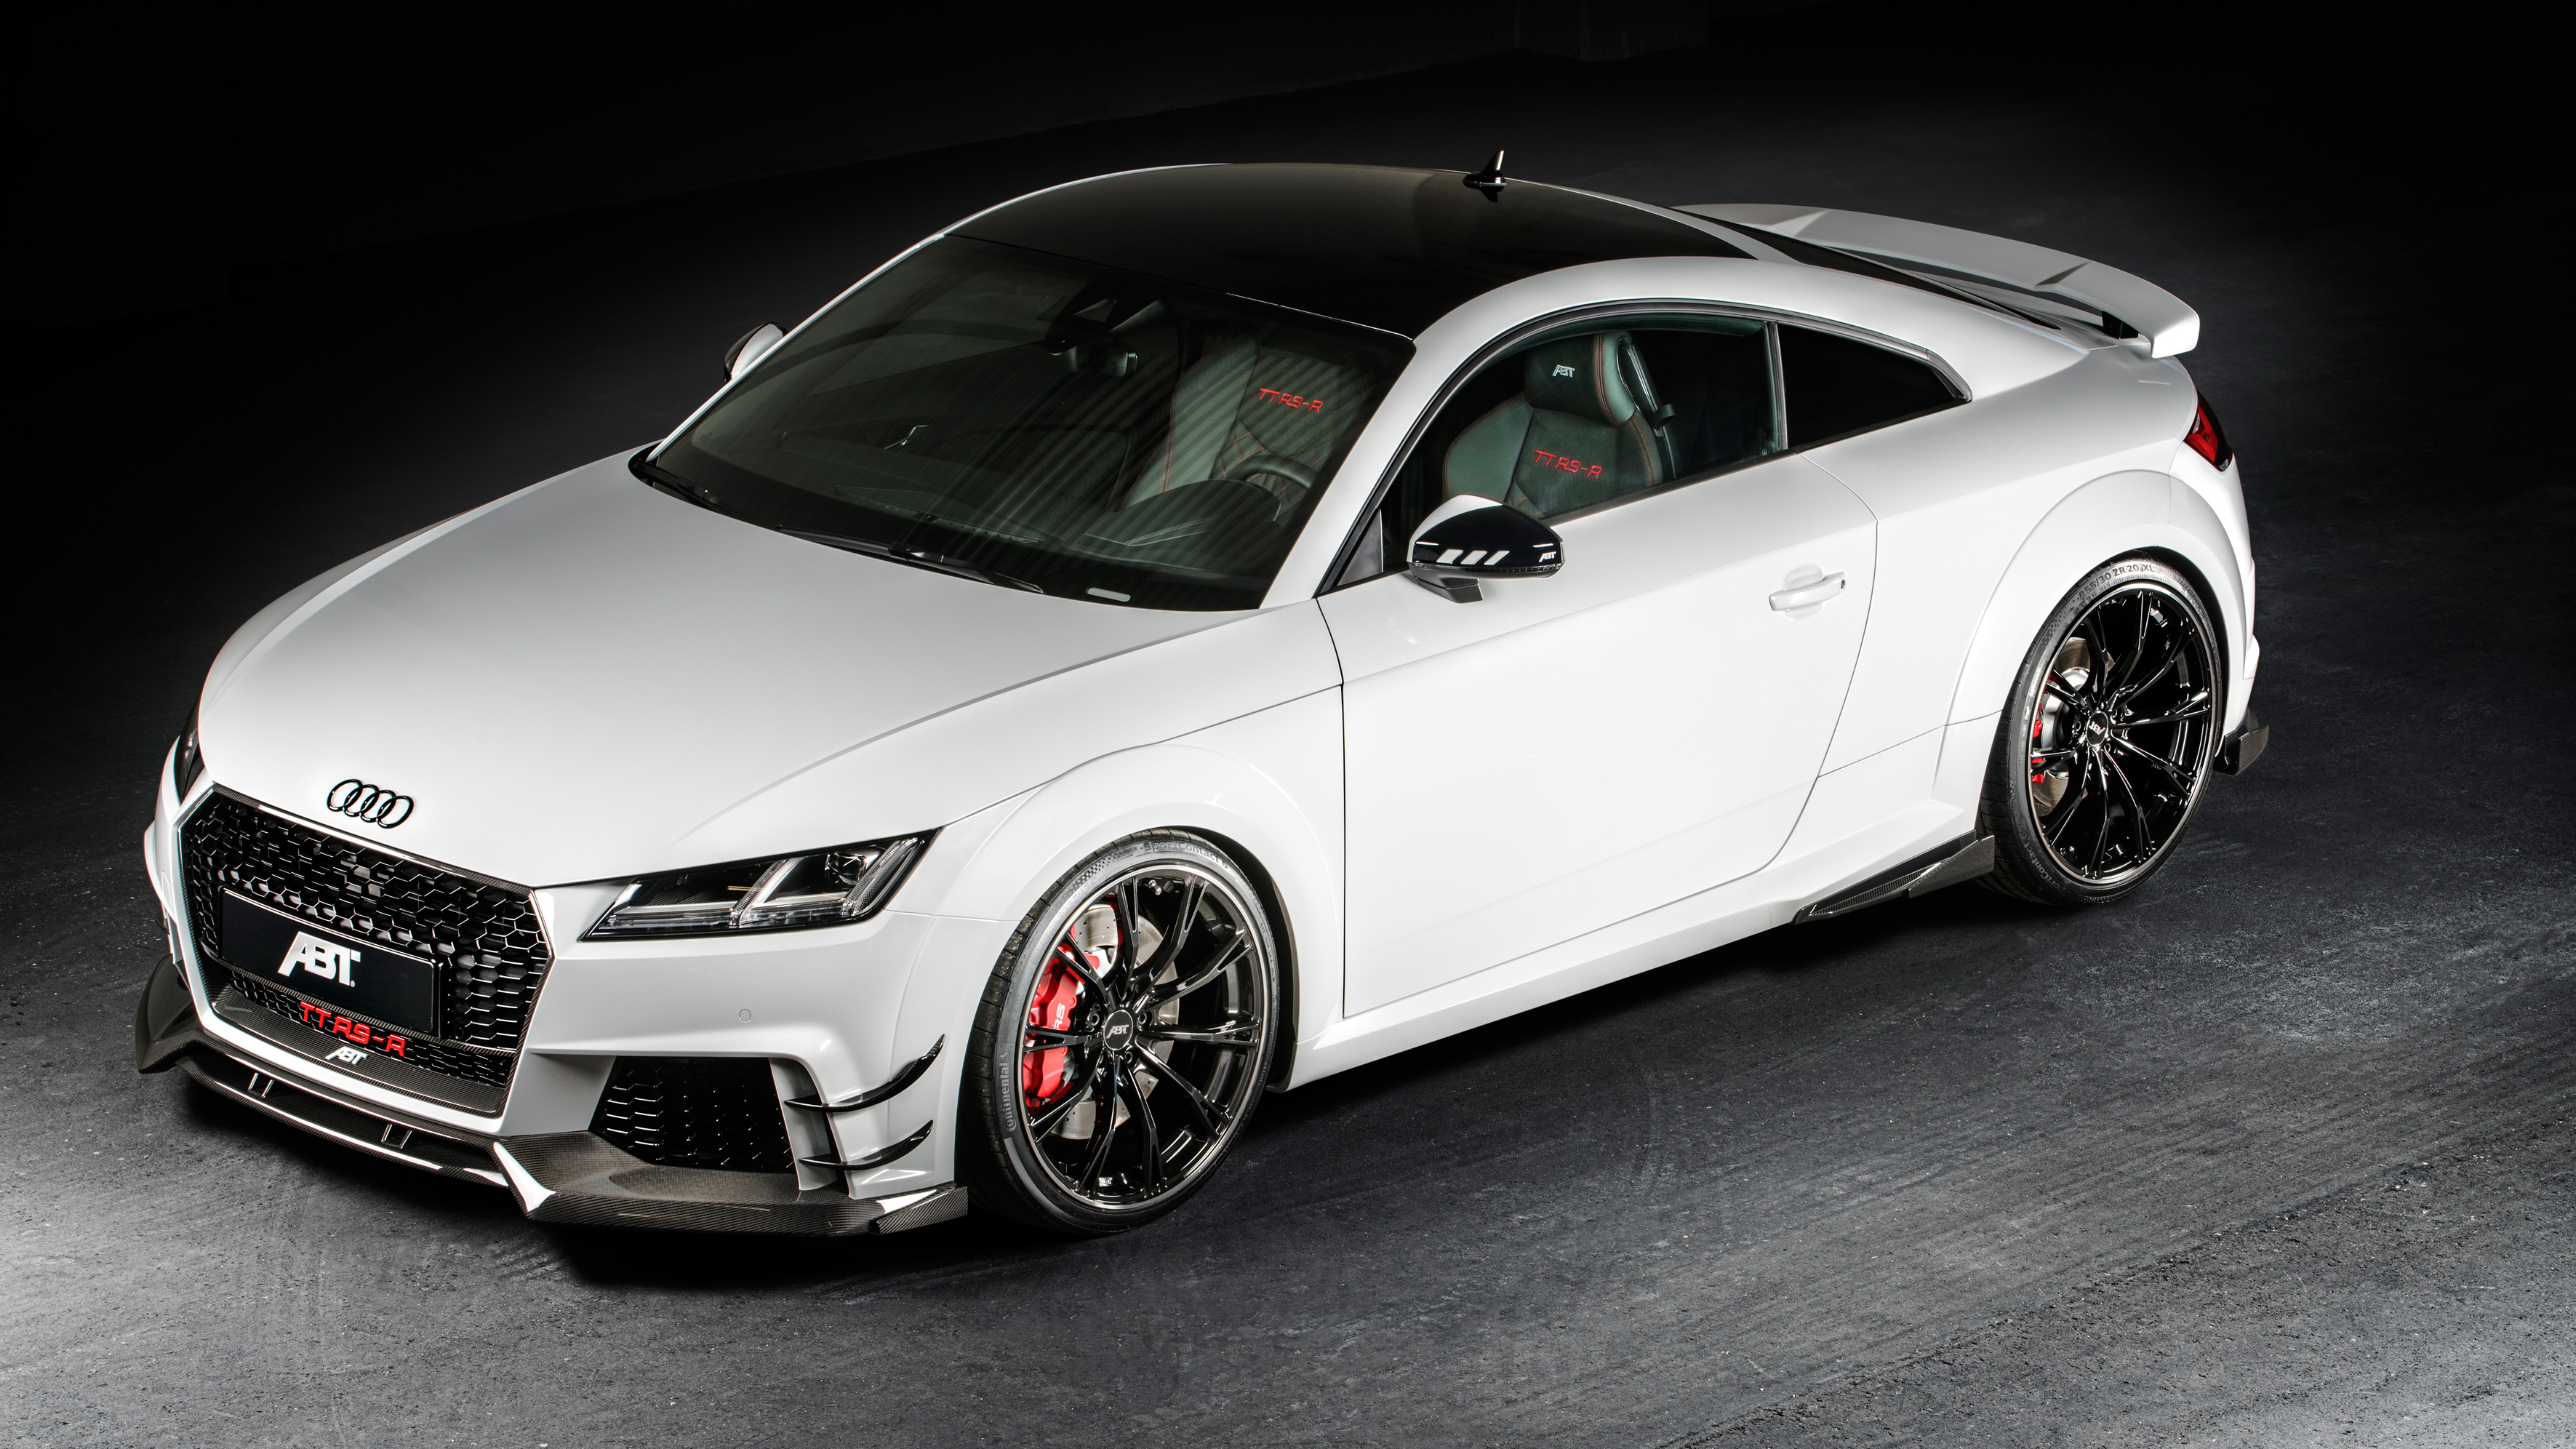 2017 ABT Audi TT RS R Wallpaper | HD Car Wallpapers